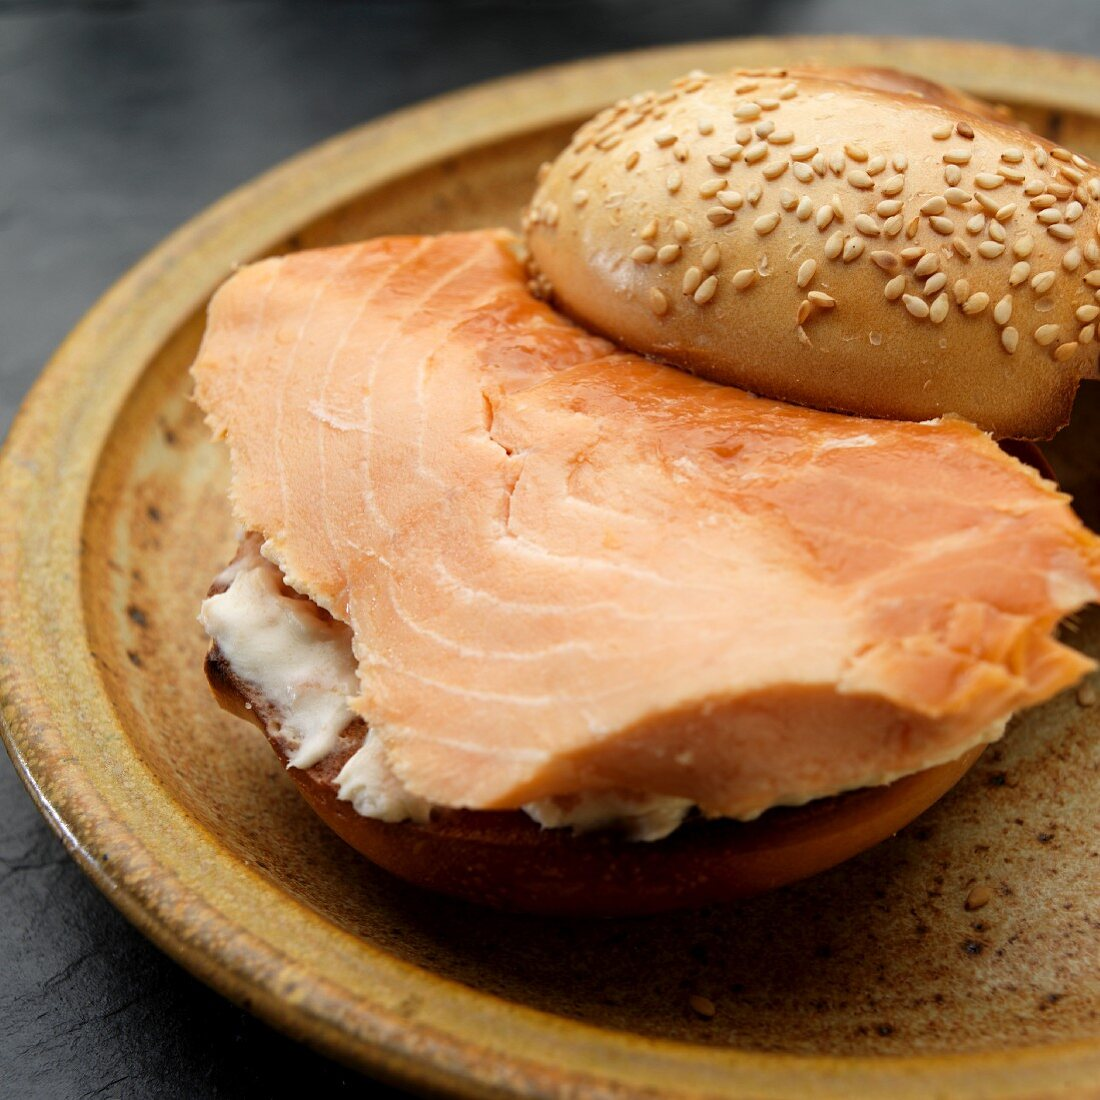 Sesame bagel filled with smoked salmon